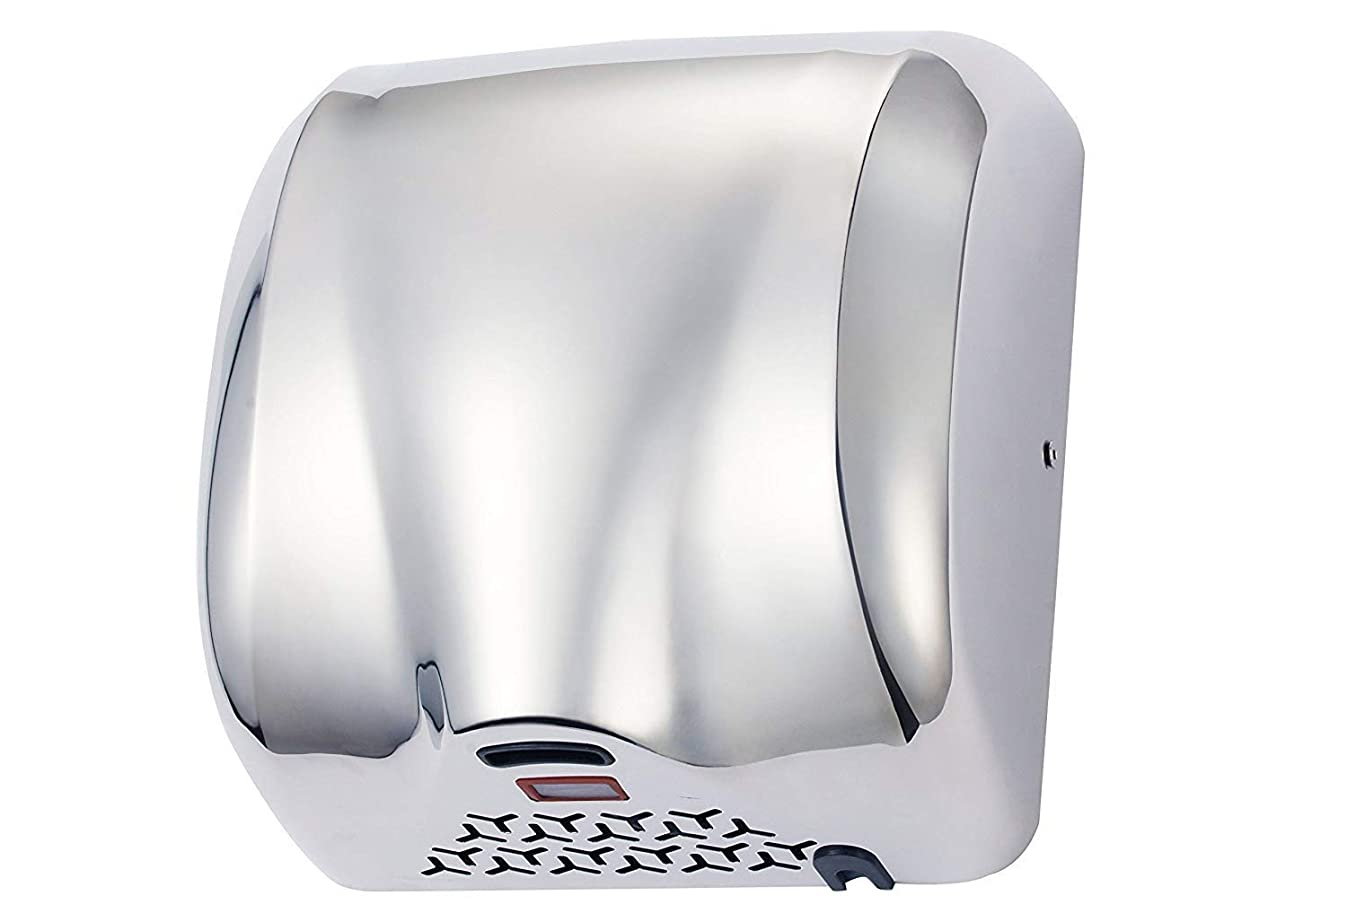 PENSON & CO. AHD-2017-01-K TCBunny Super Quiet Automatic Electric Hand Dryer Commercial High Speed 90m/s, Silver, Instant Heat & Dry, K2017